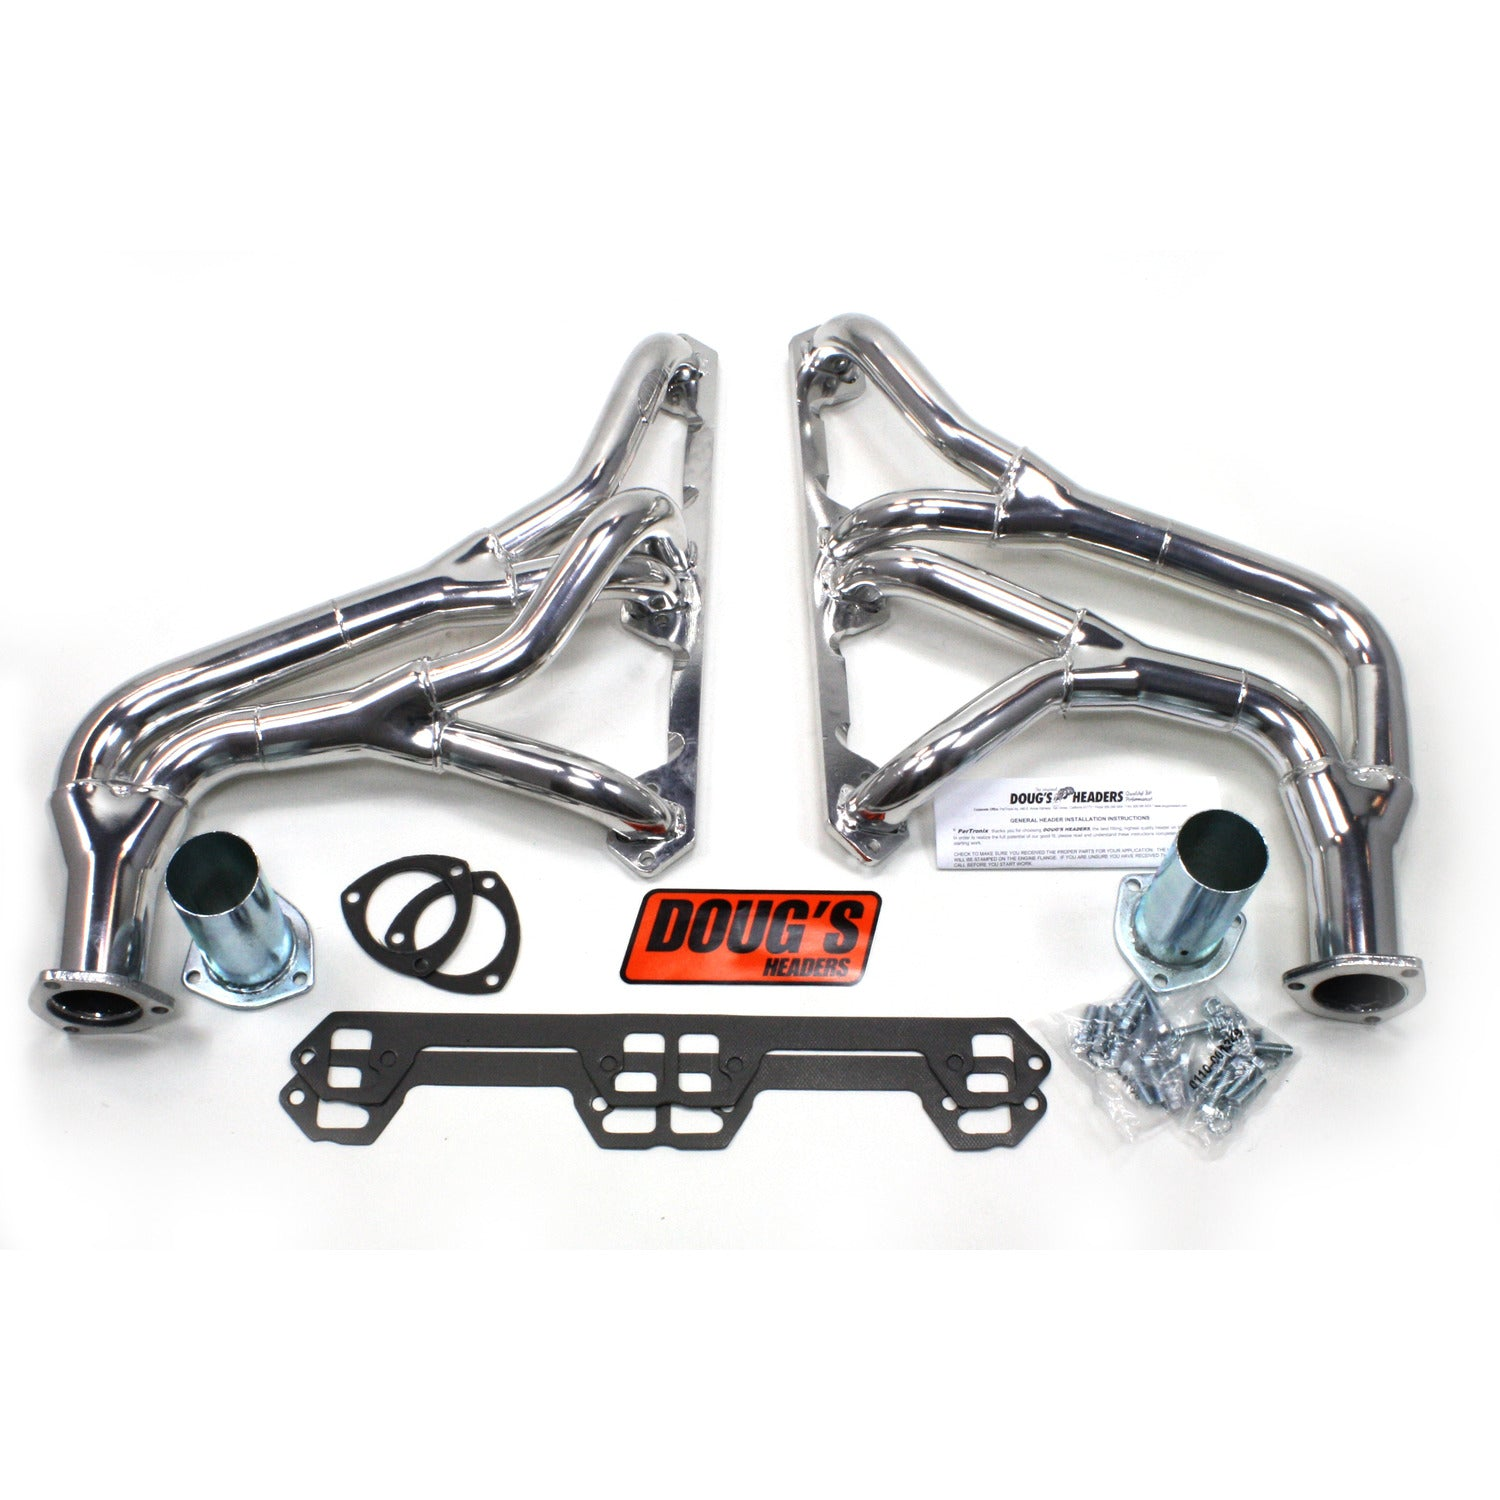 "Doug's Headers D1104Y 1 5/8"" Tri-Y Header AMC Jeep V8 72-81 Metallic Ceramic Coating"